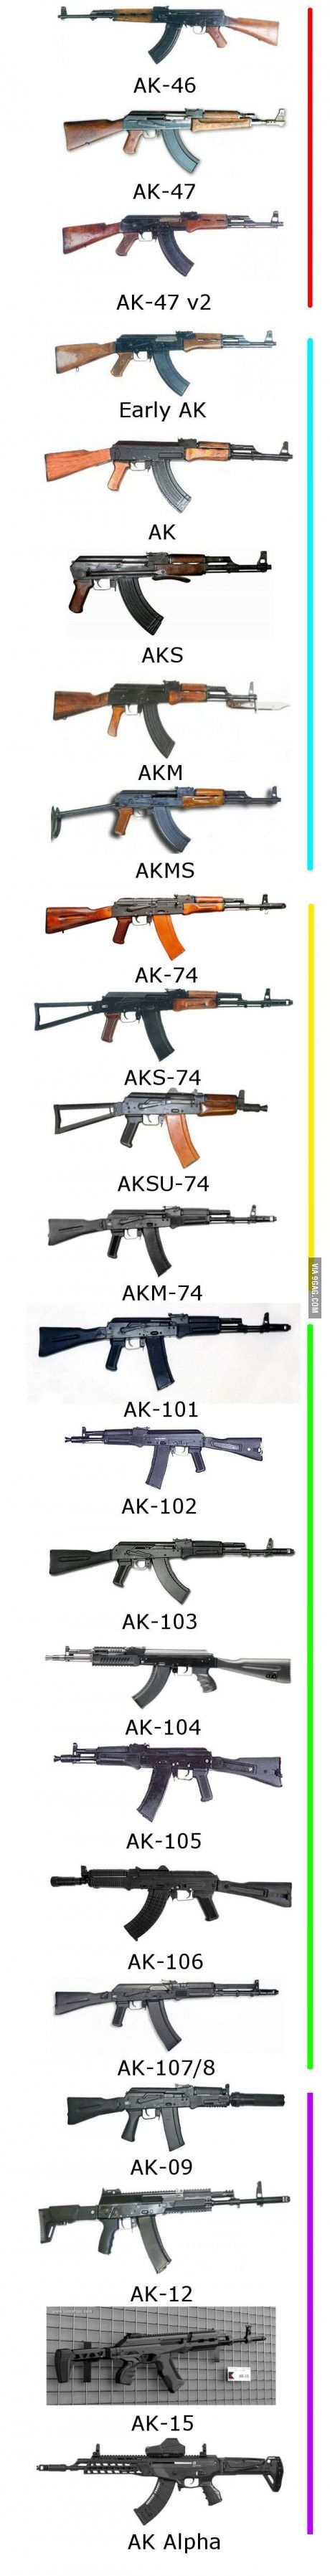 """Not only """"AK-47"""":"""